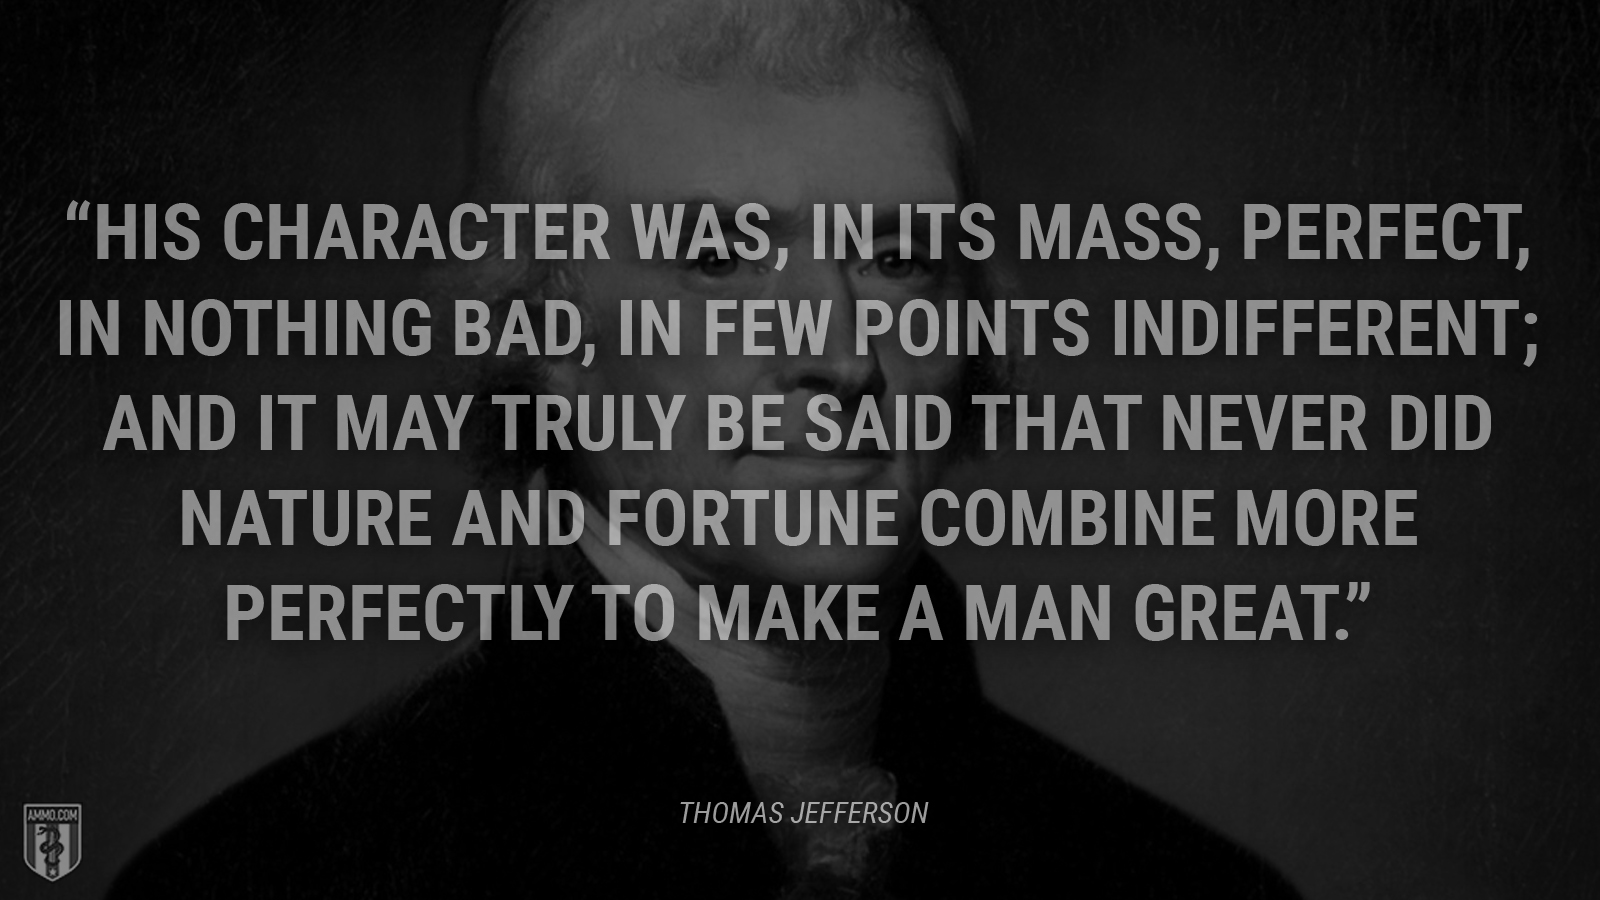 """His character was, in its mass, perfect, in nothing bad, in few points indifferent; and it may truly be said that never did nature and fortune combine more perfectly to make a man great."" - Thomas Jefferson"